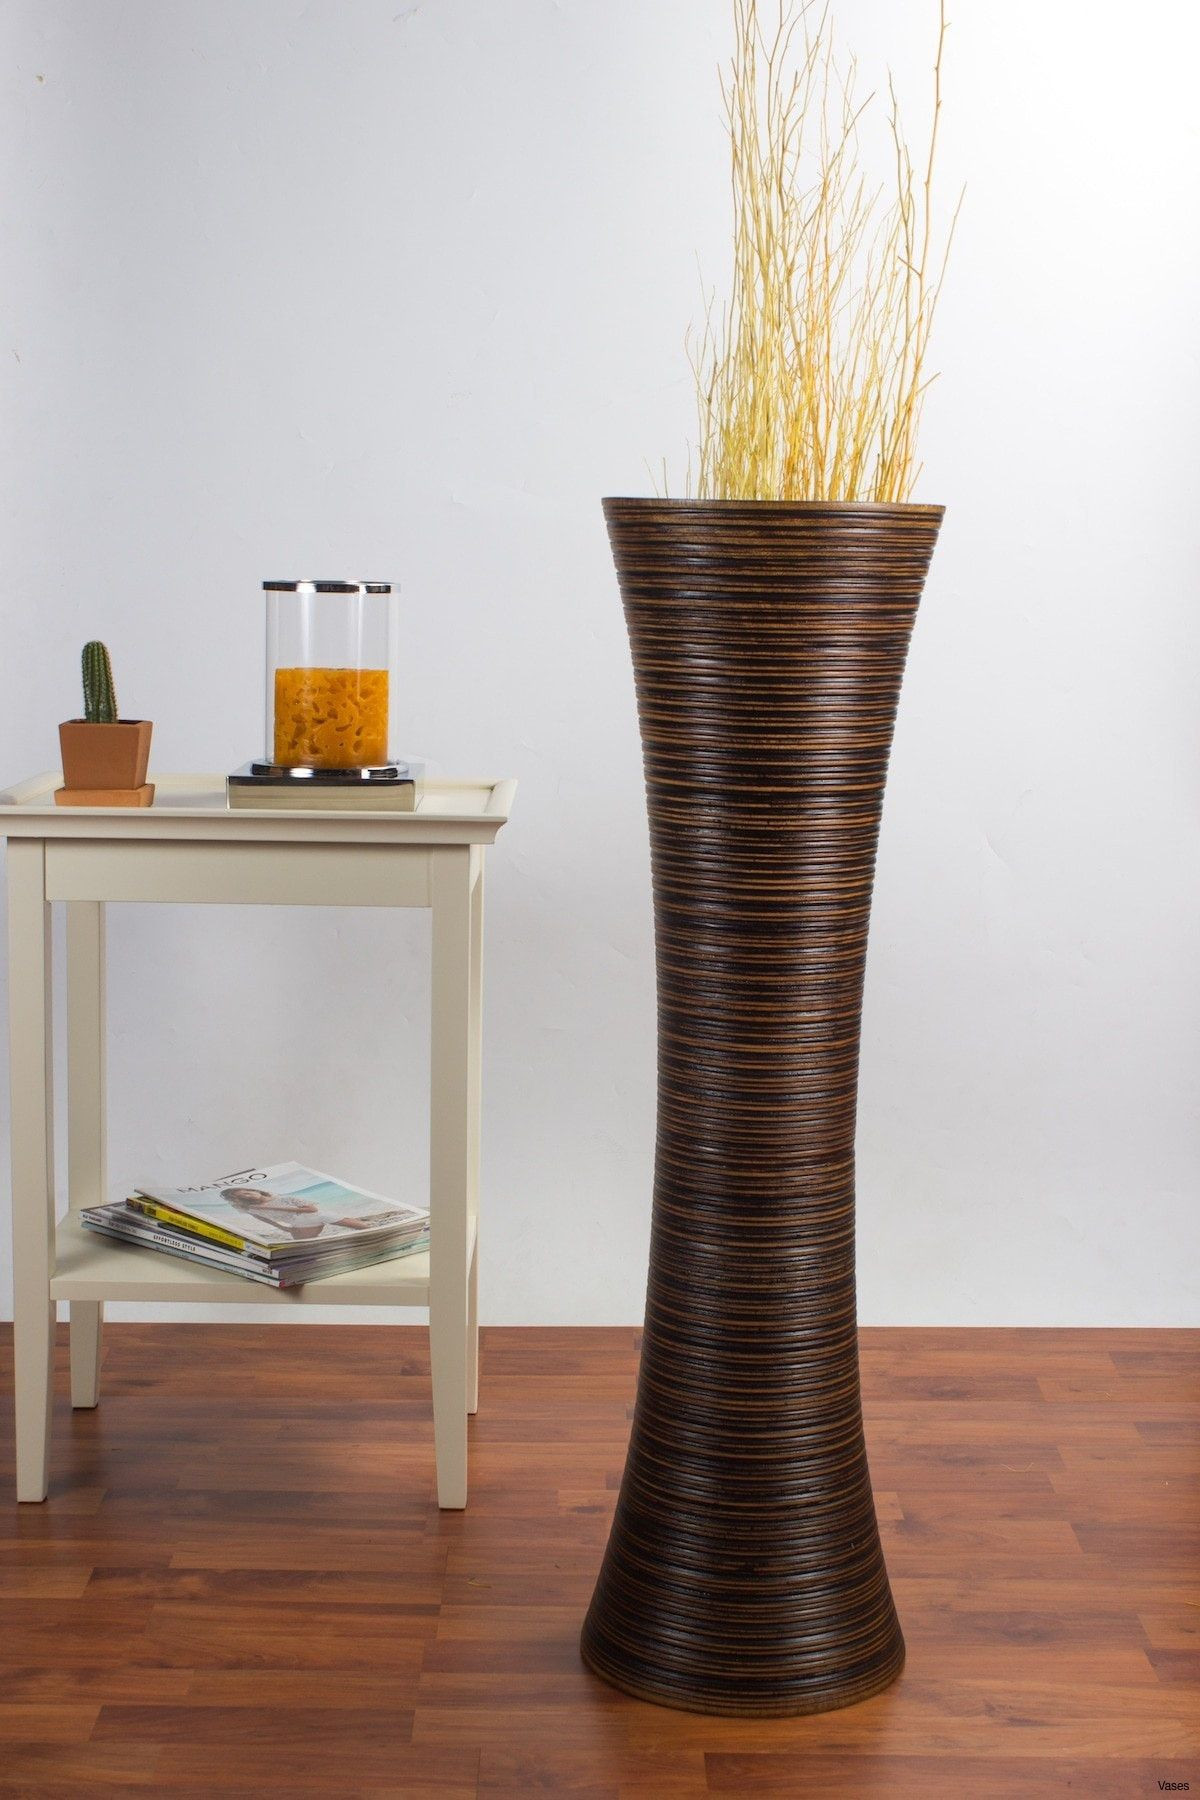 Gray Floor Vase Of Tall Decorative Vases Luxury Decorative Floor Vases Fresh D Dkbrw Regarding Tall Decorative Vases Luxury Decorative Floor Vases Fresh D Dkbrw 5749 1h Vases Tall Brown I